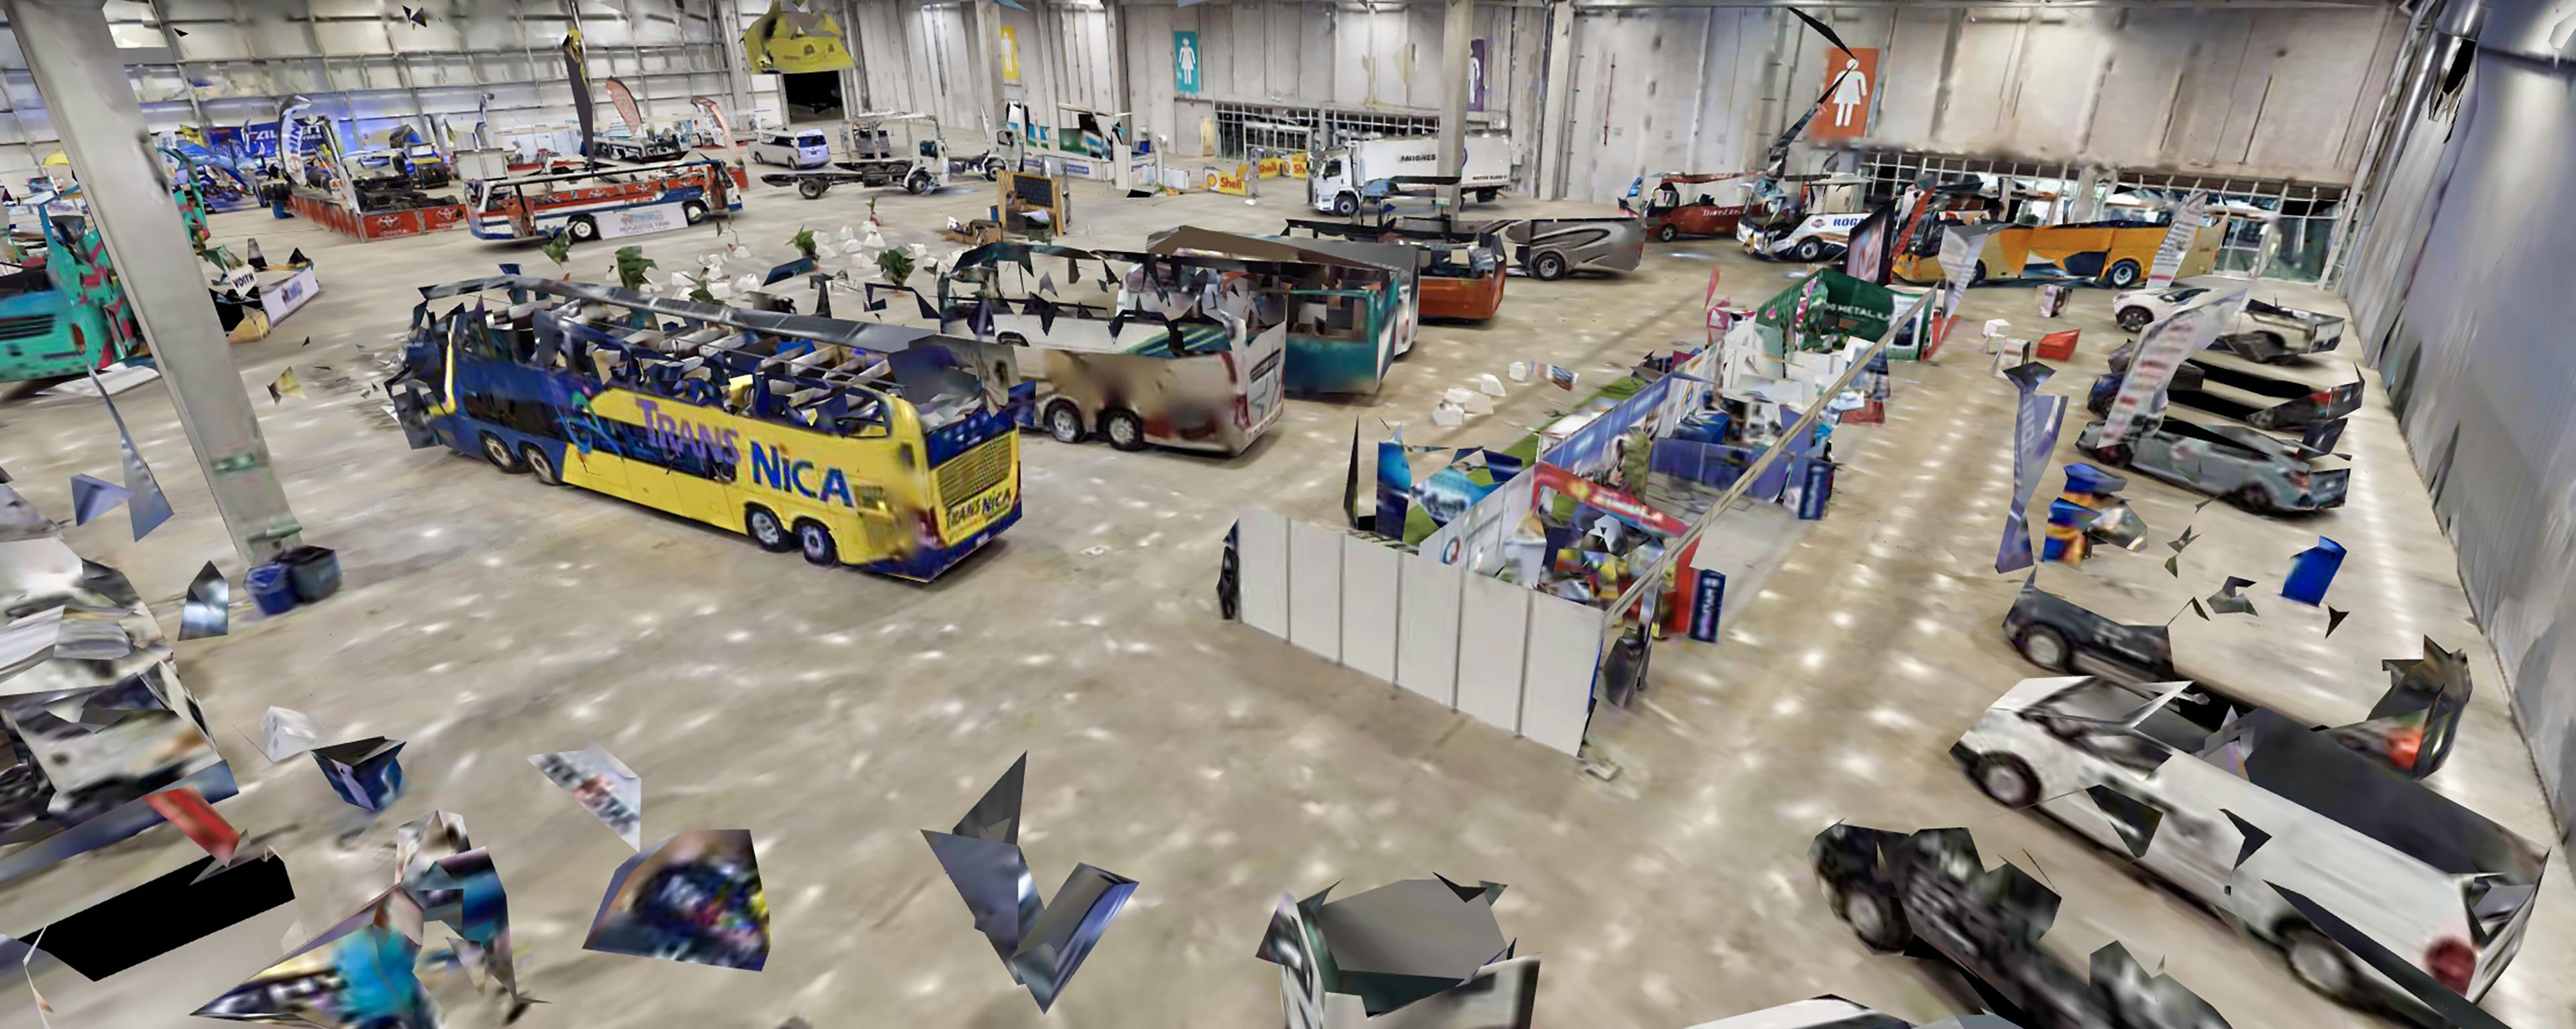 Dollhouse-Expo-Transporte-2018-Color-Mejorado.jpg